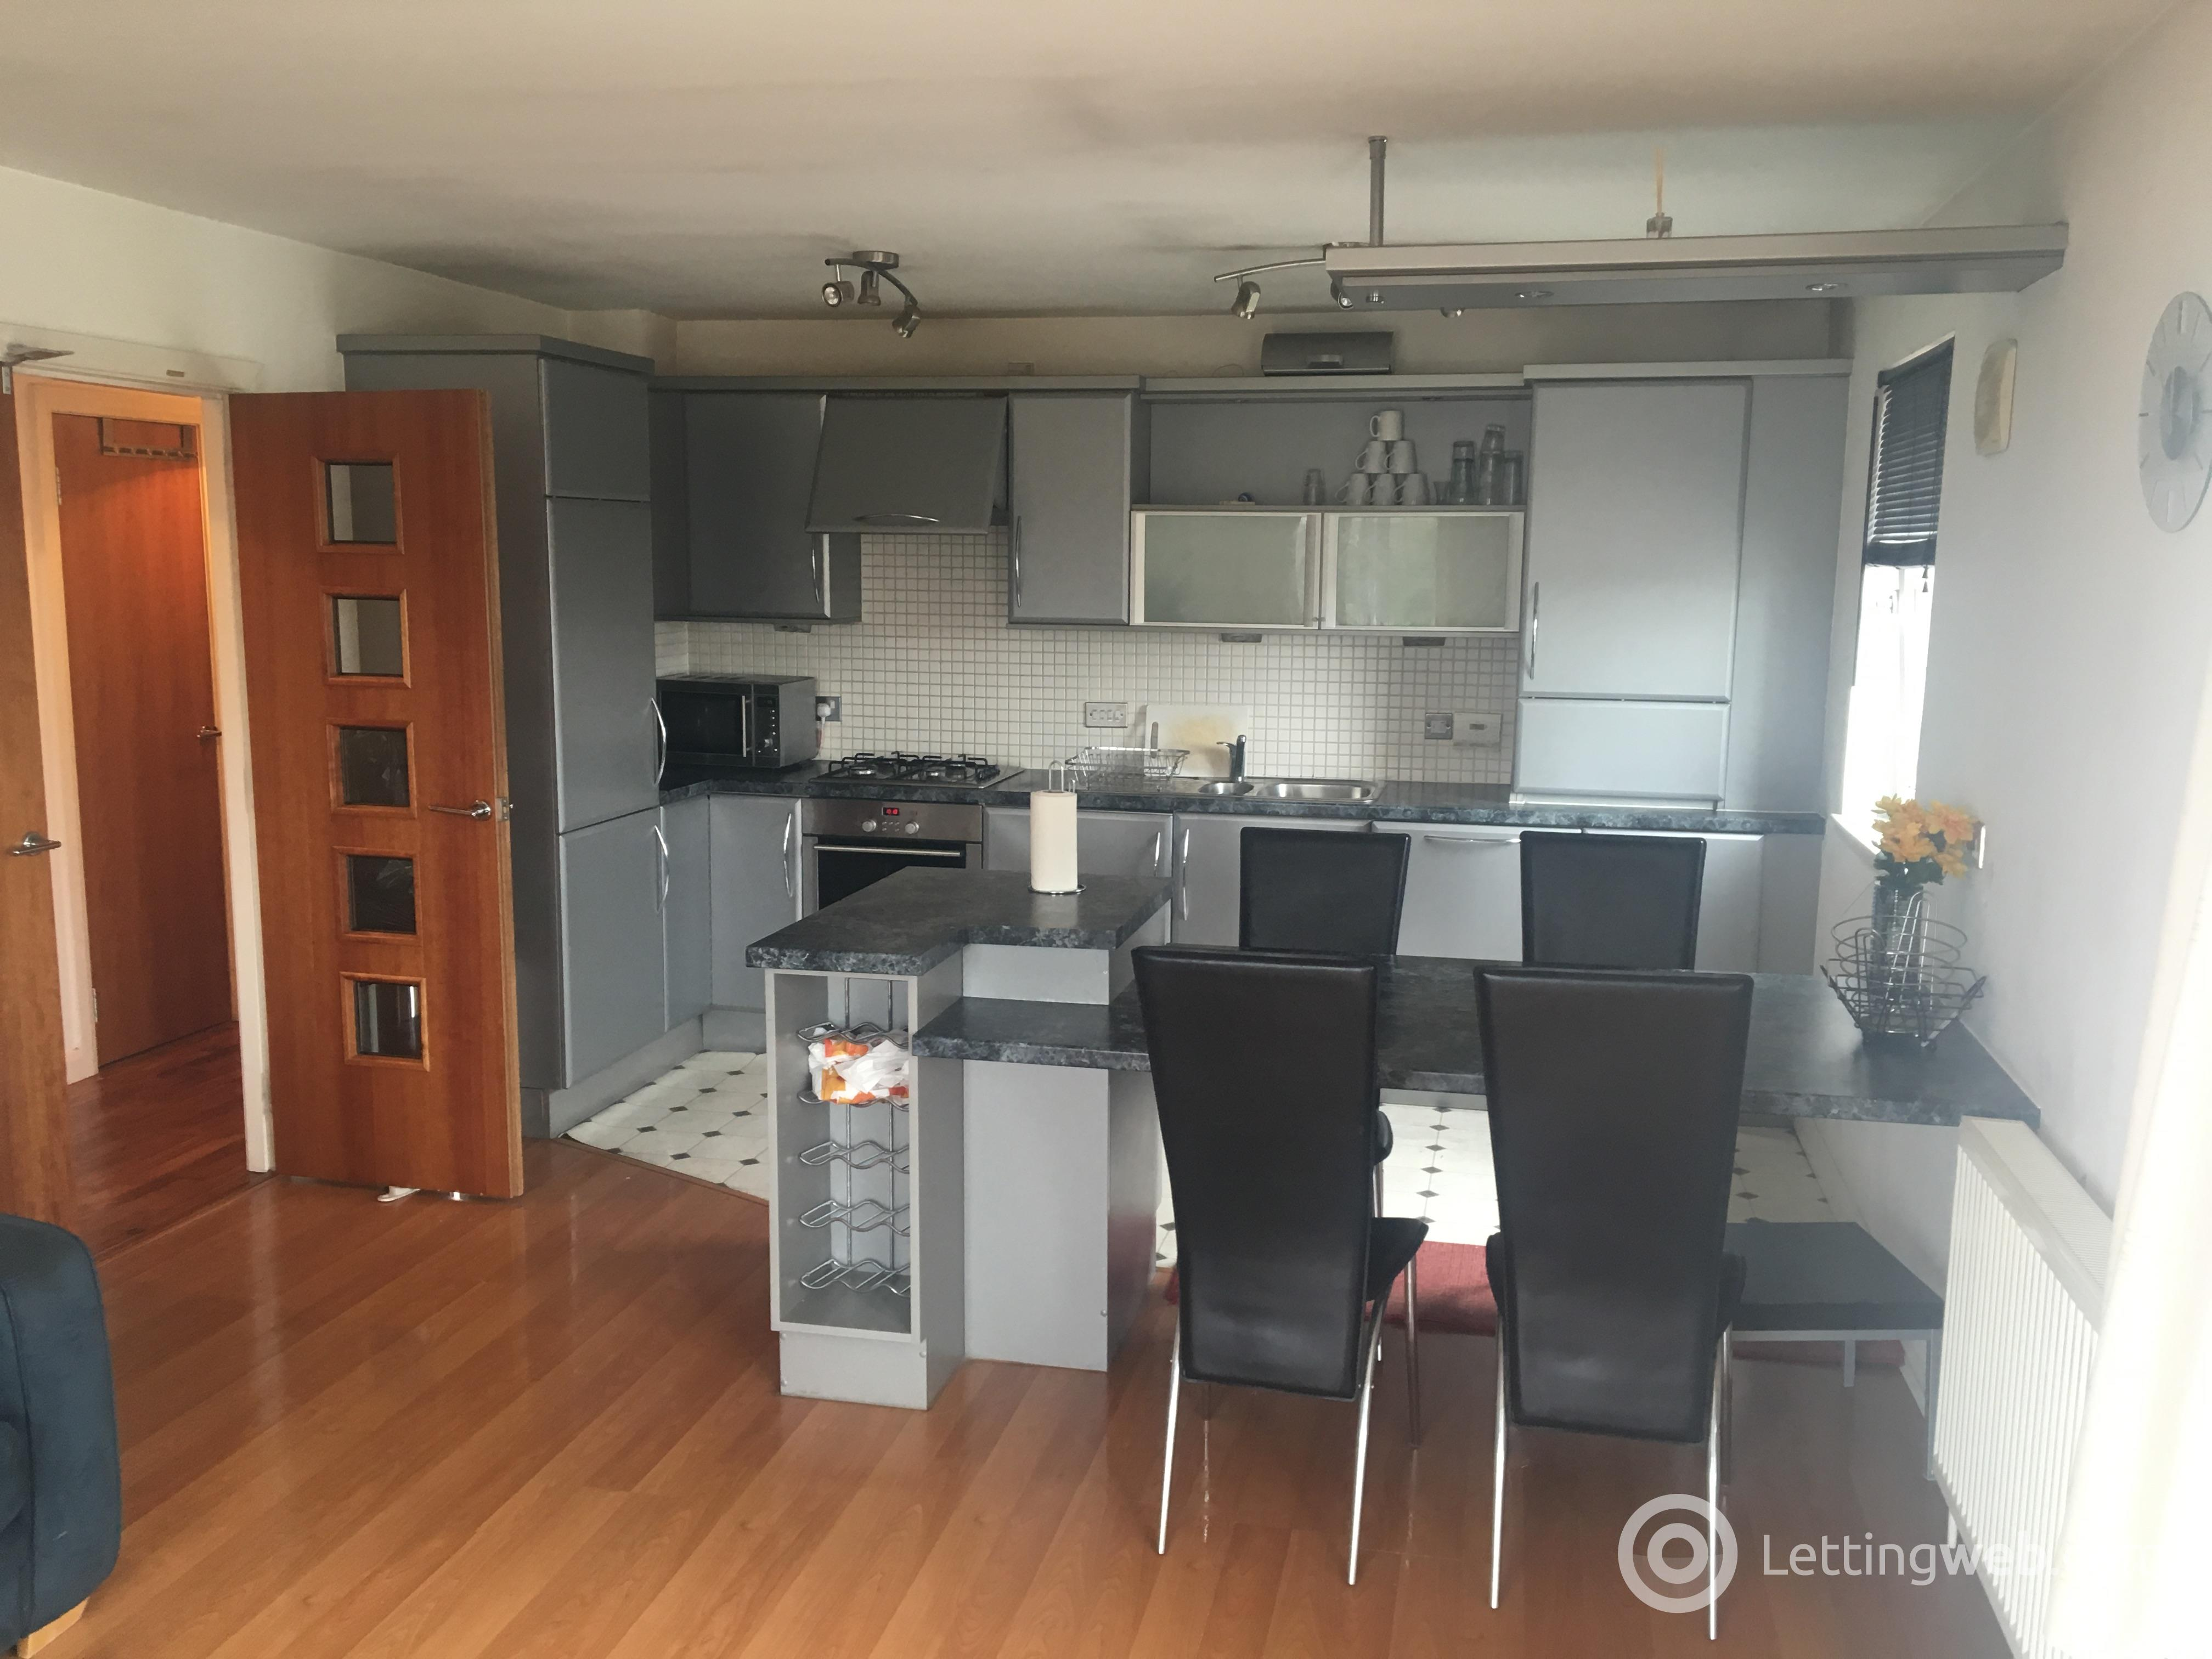 Property to rent in Kaims Terrace, Kirkton, West Lothian, EH54 7EX